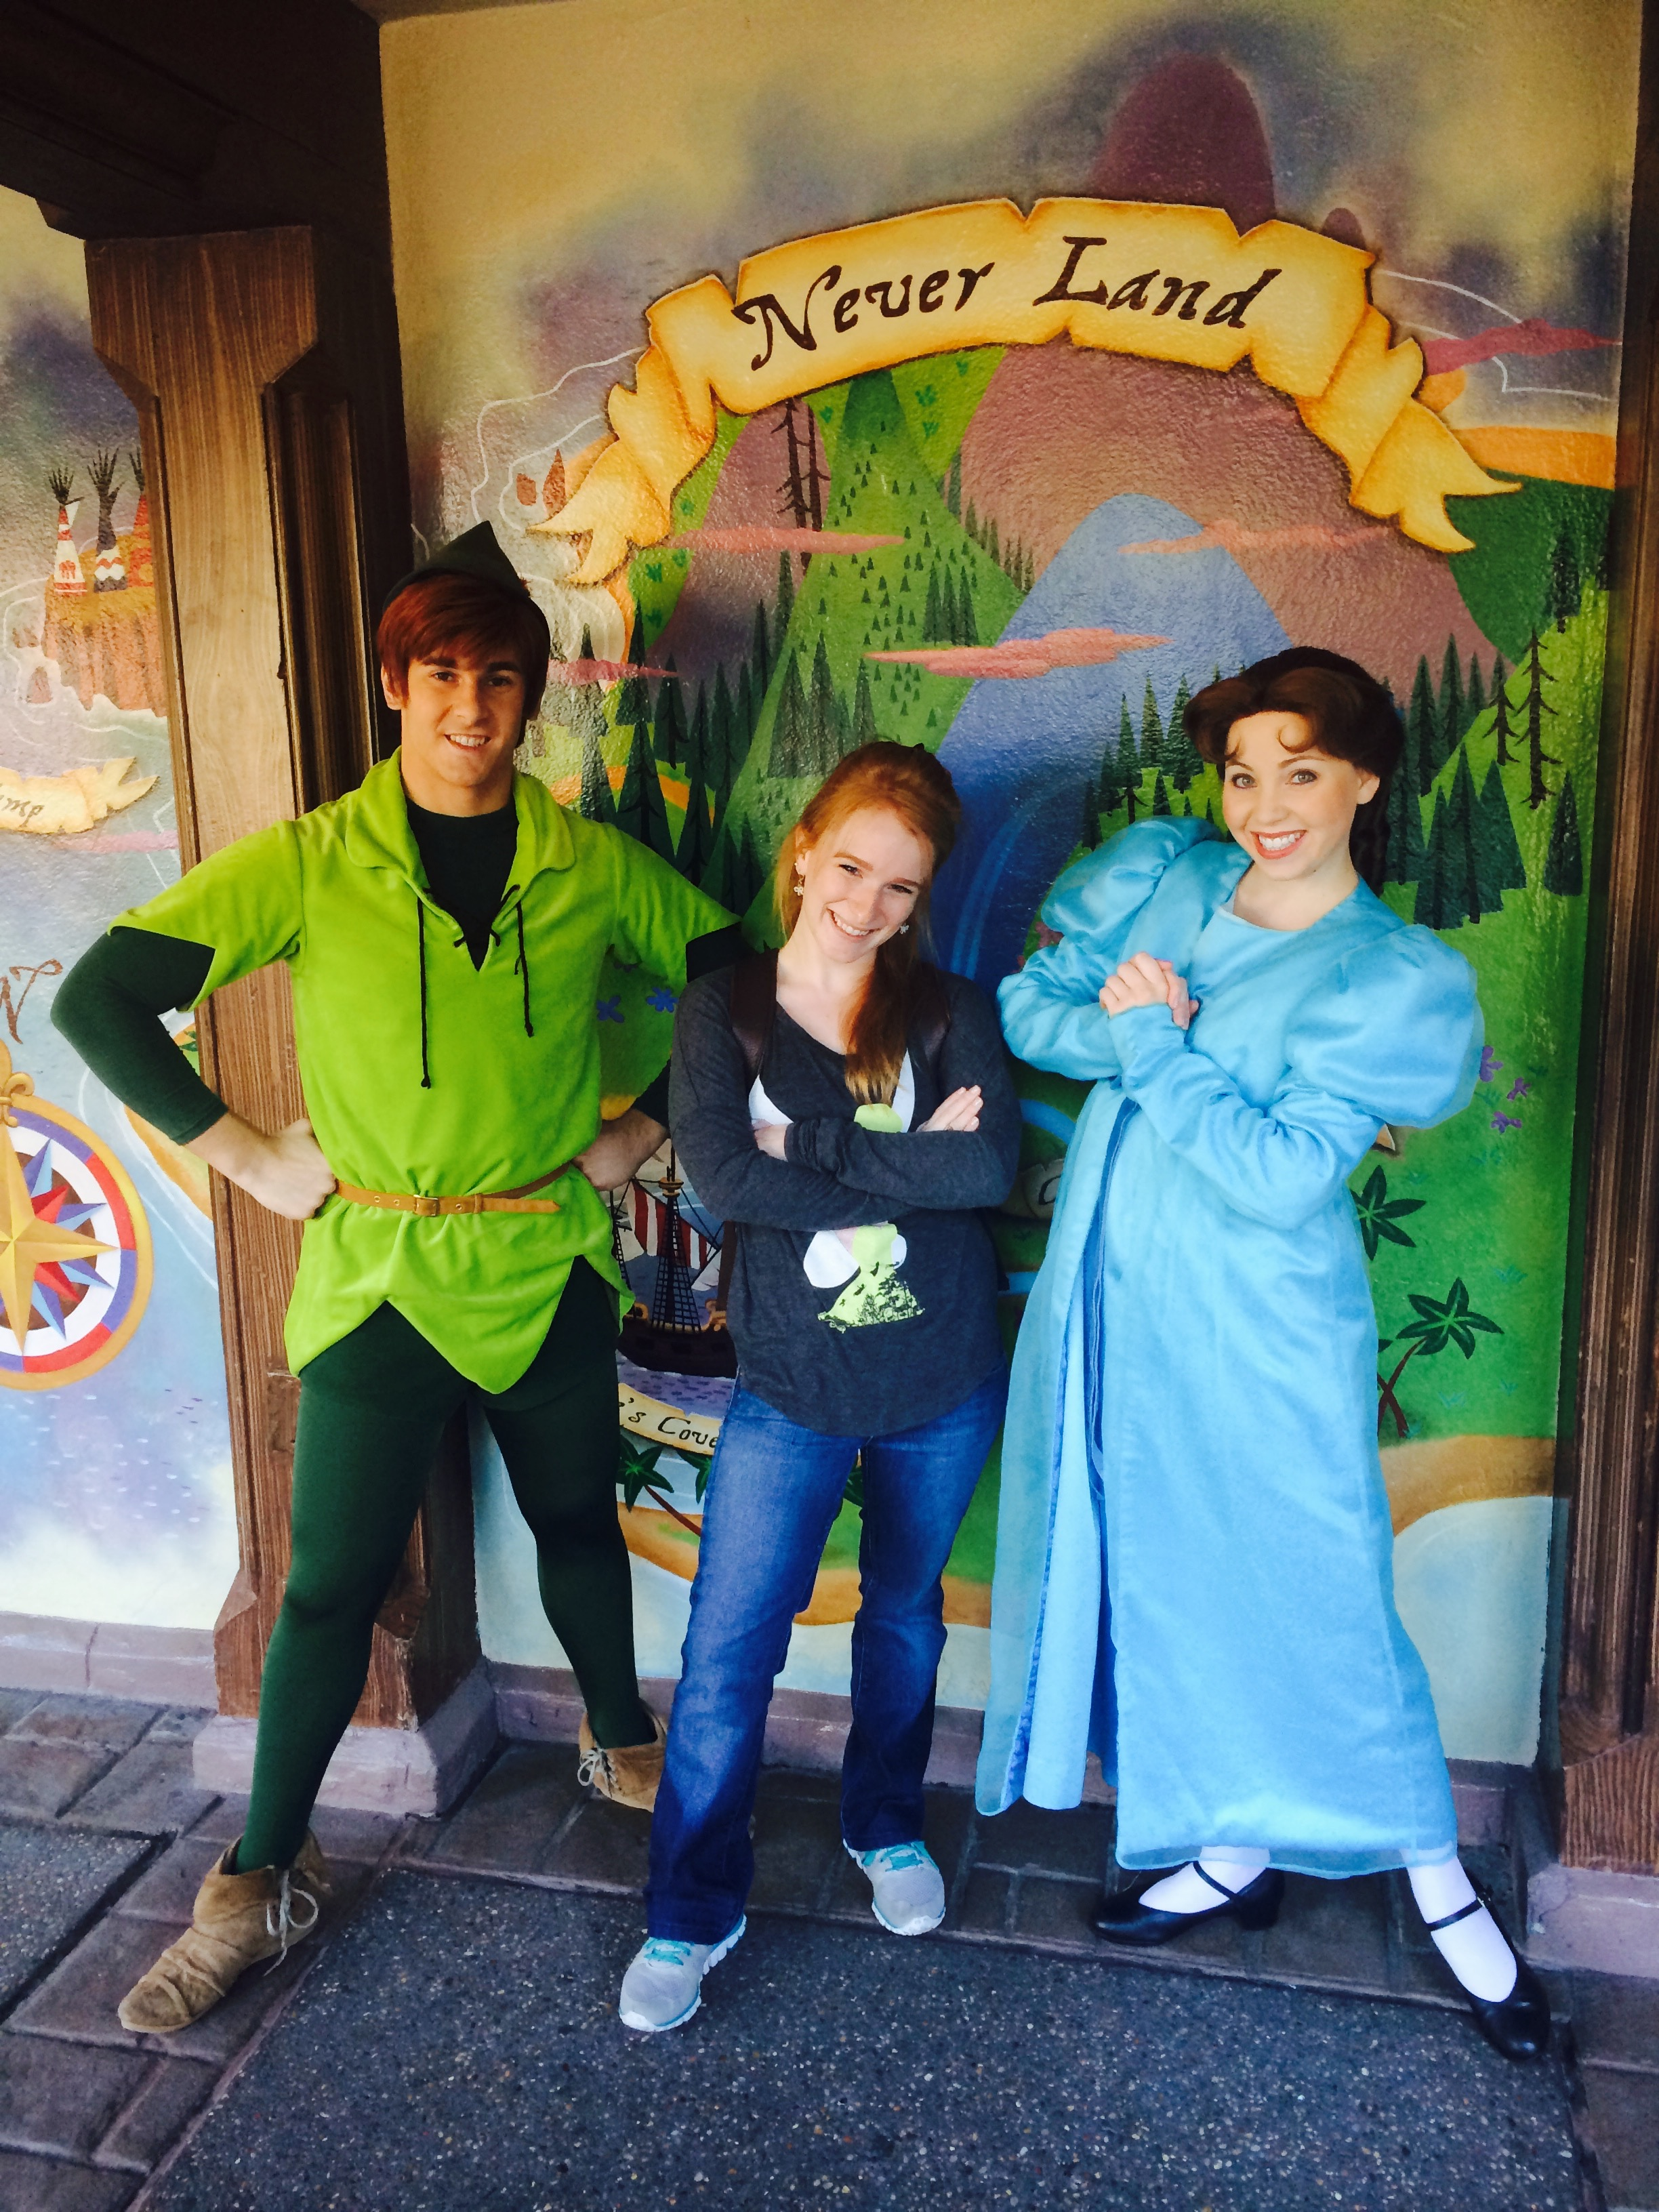 Peter Pan and Wendy Meet and Greet